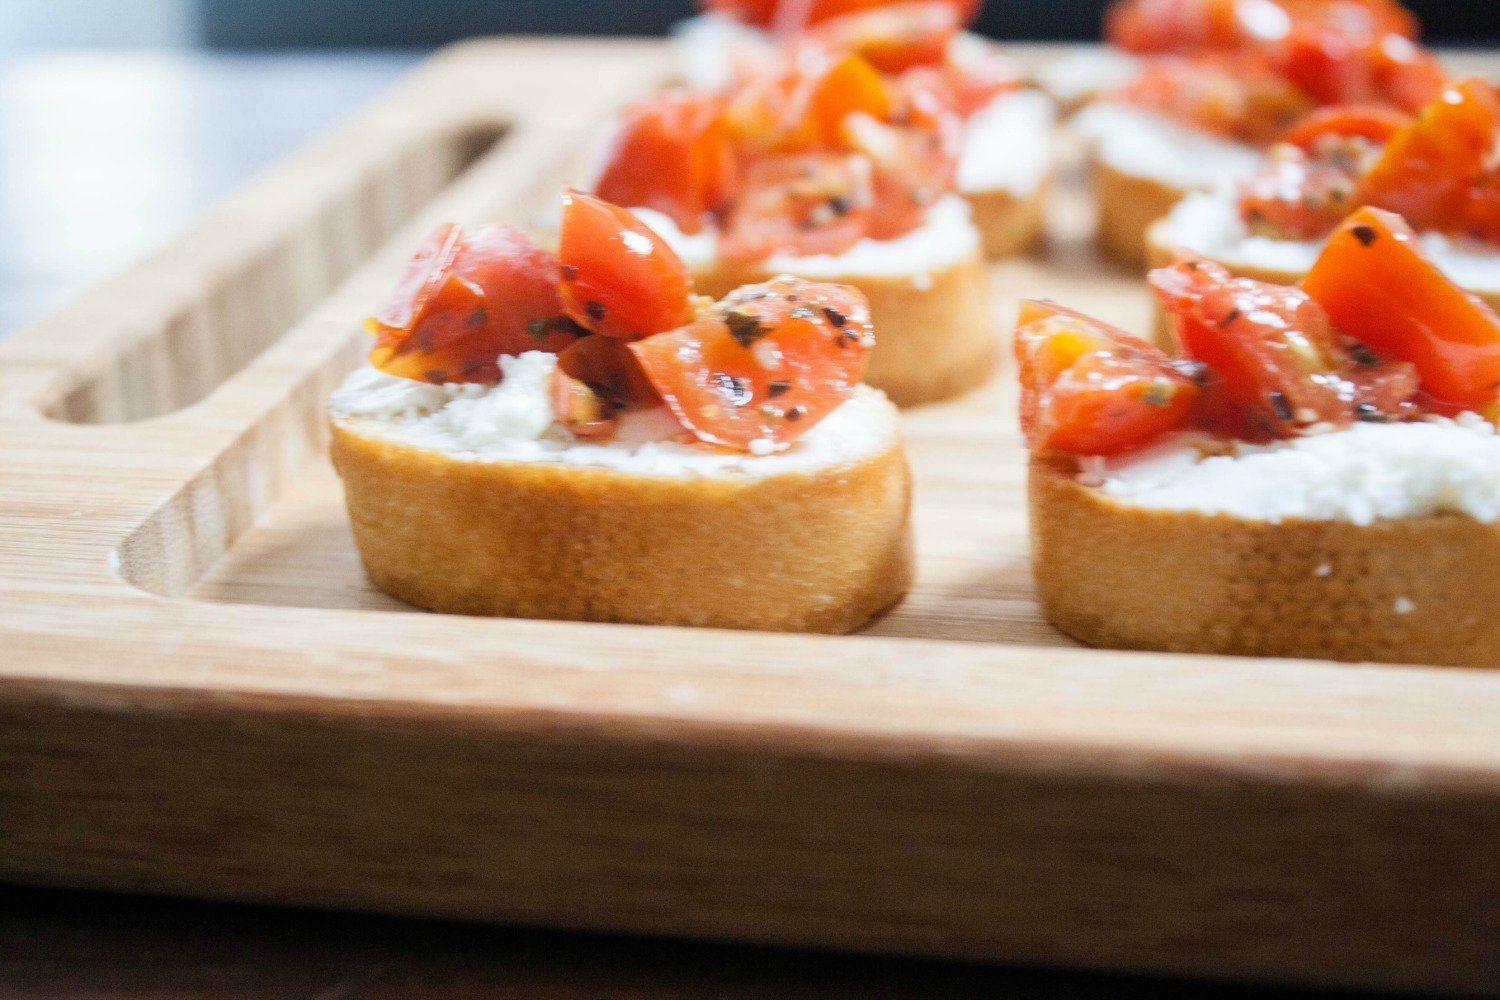 Easy appetizer idea for a wine and tapas night